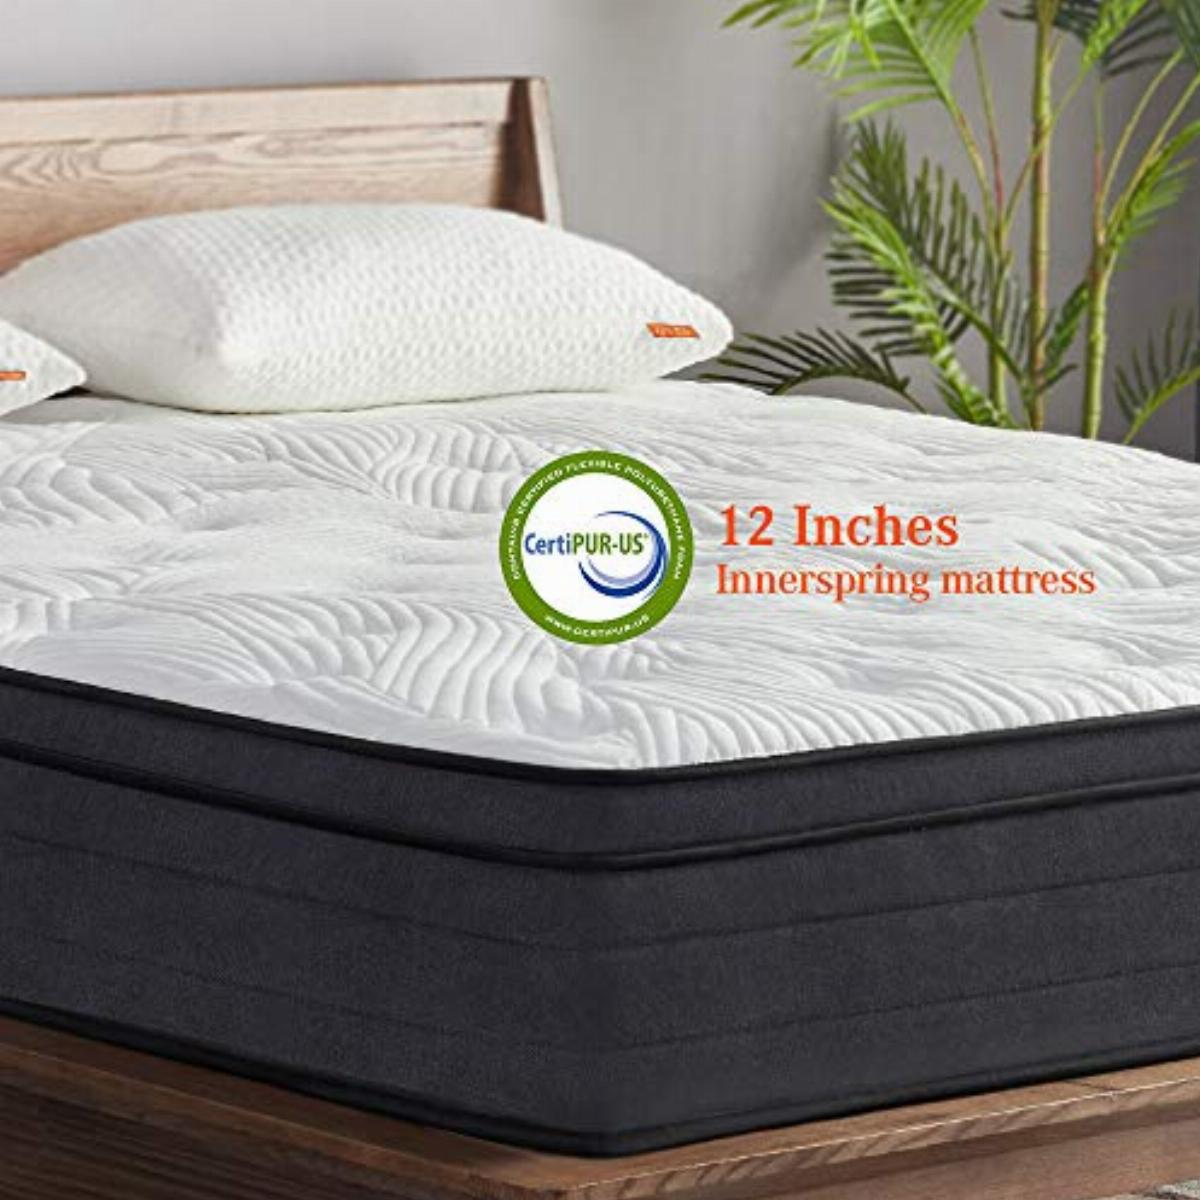 sweetnight king mattress in a box 12 inch plush pillow top gel memory foam hybrid mattress with motion isolating individually wrapped coils bed